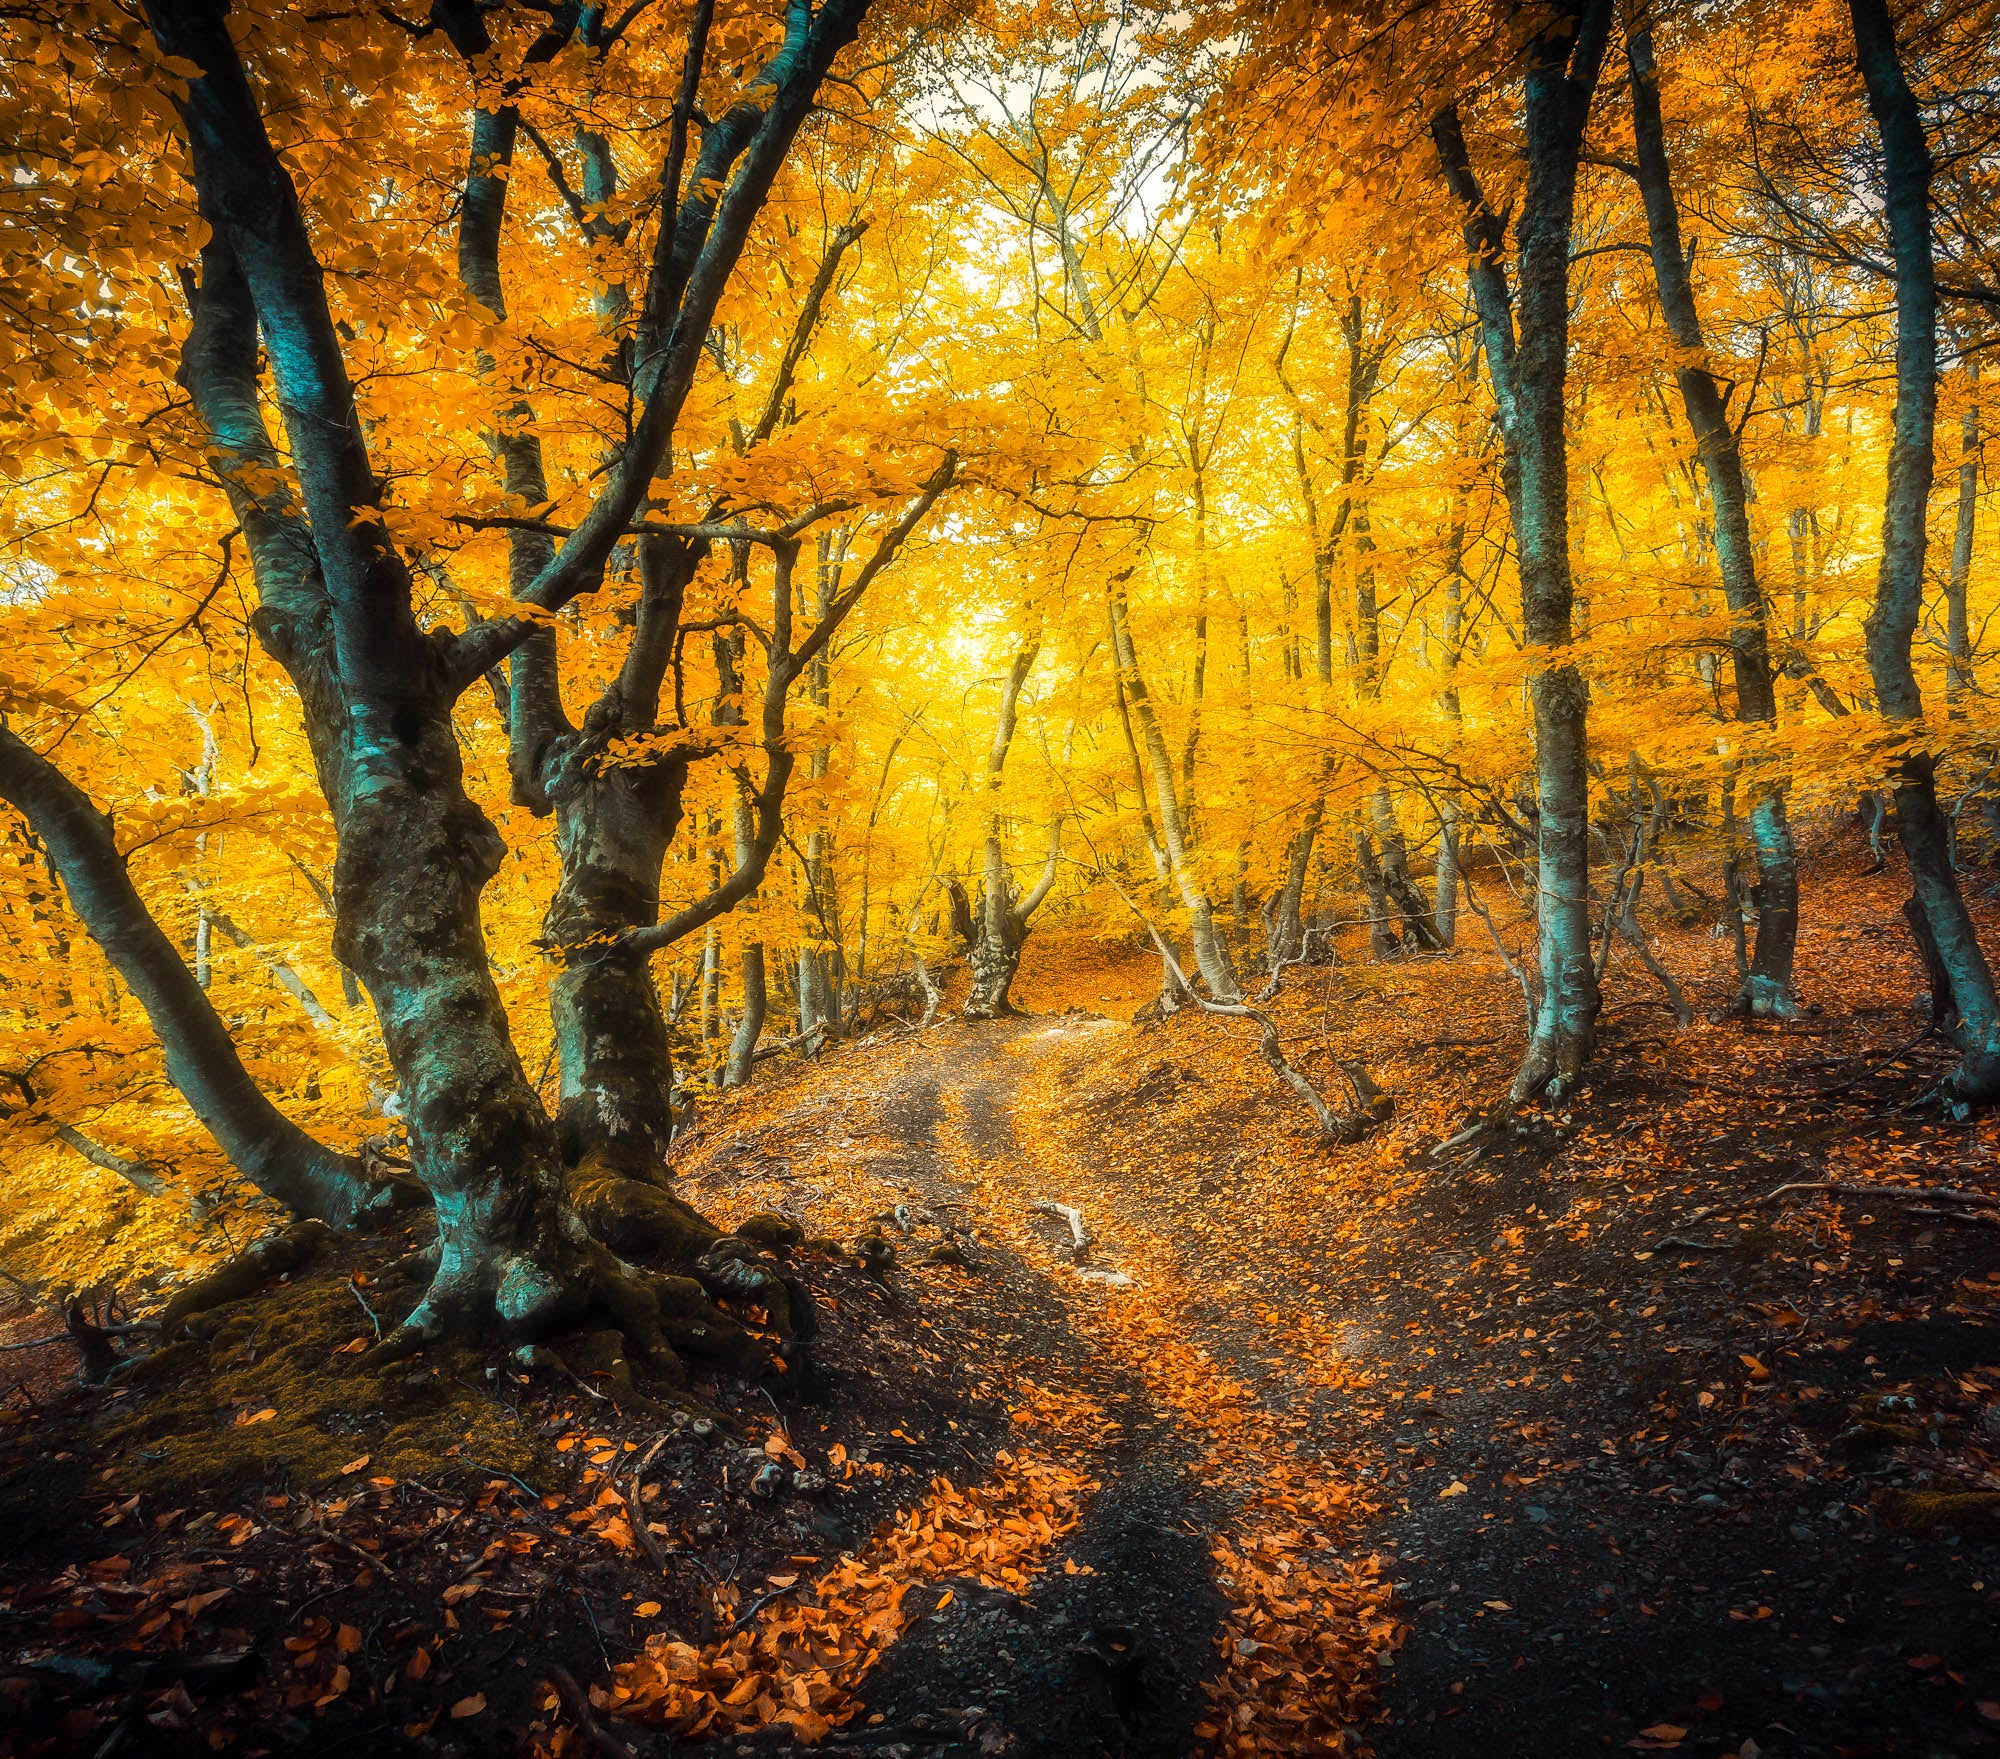 Fall Lightroom Preset - Golden Moody High Contrast